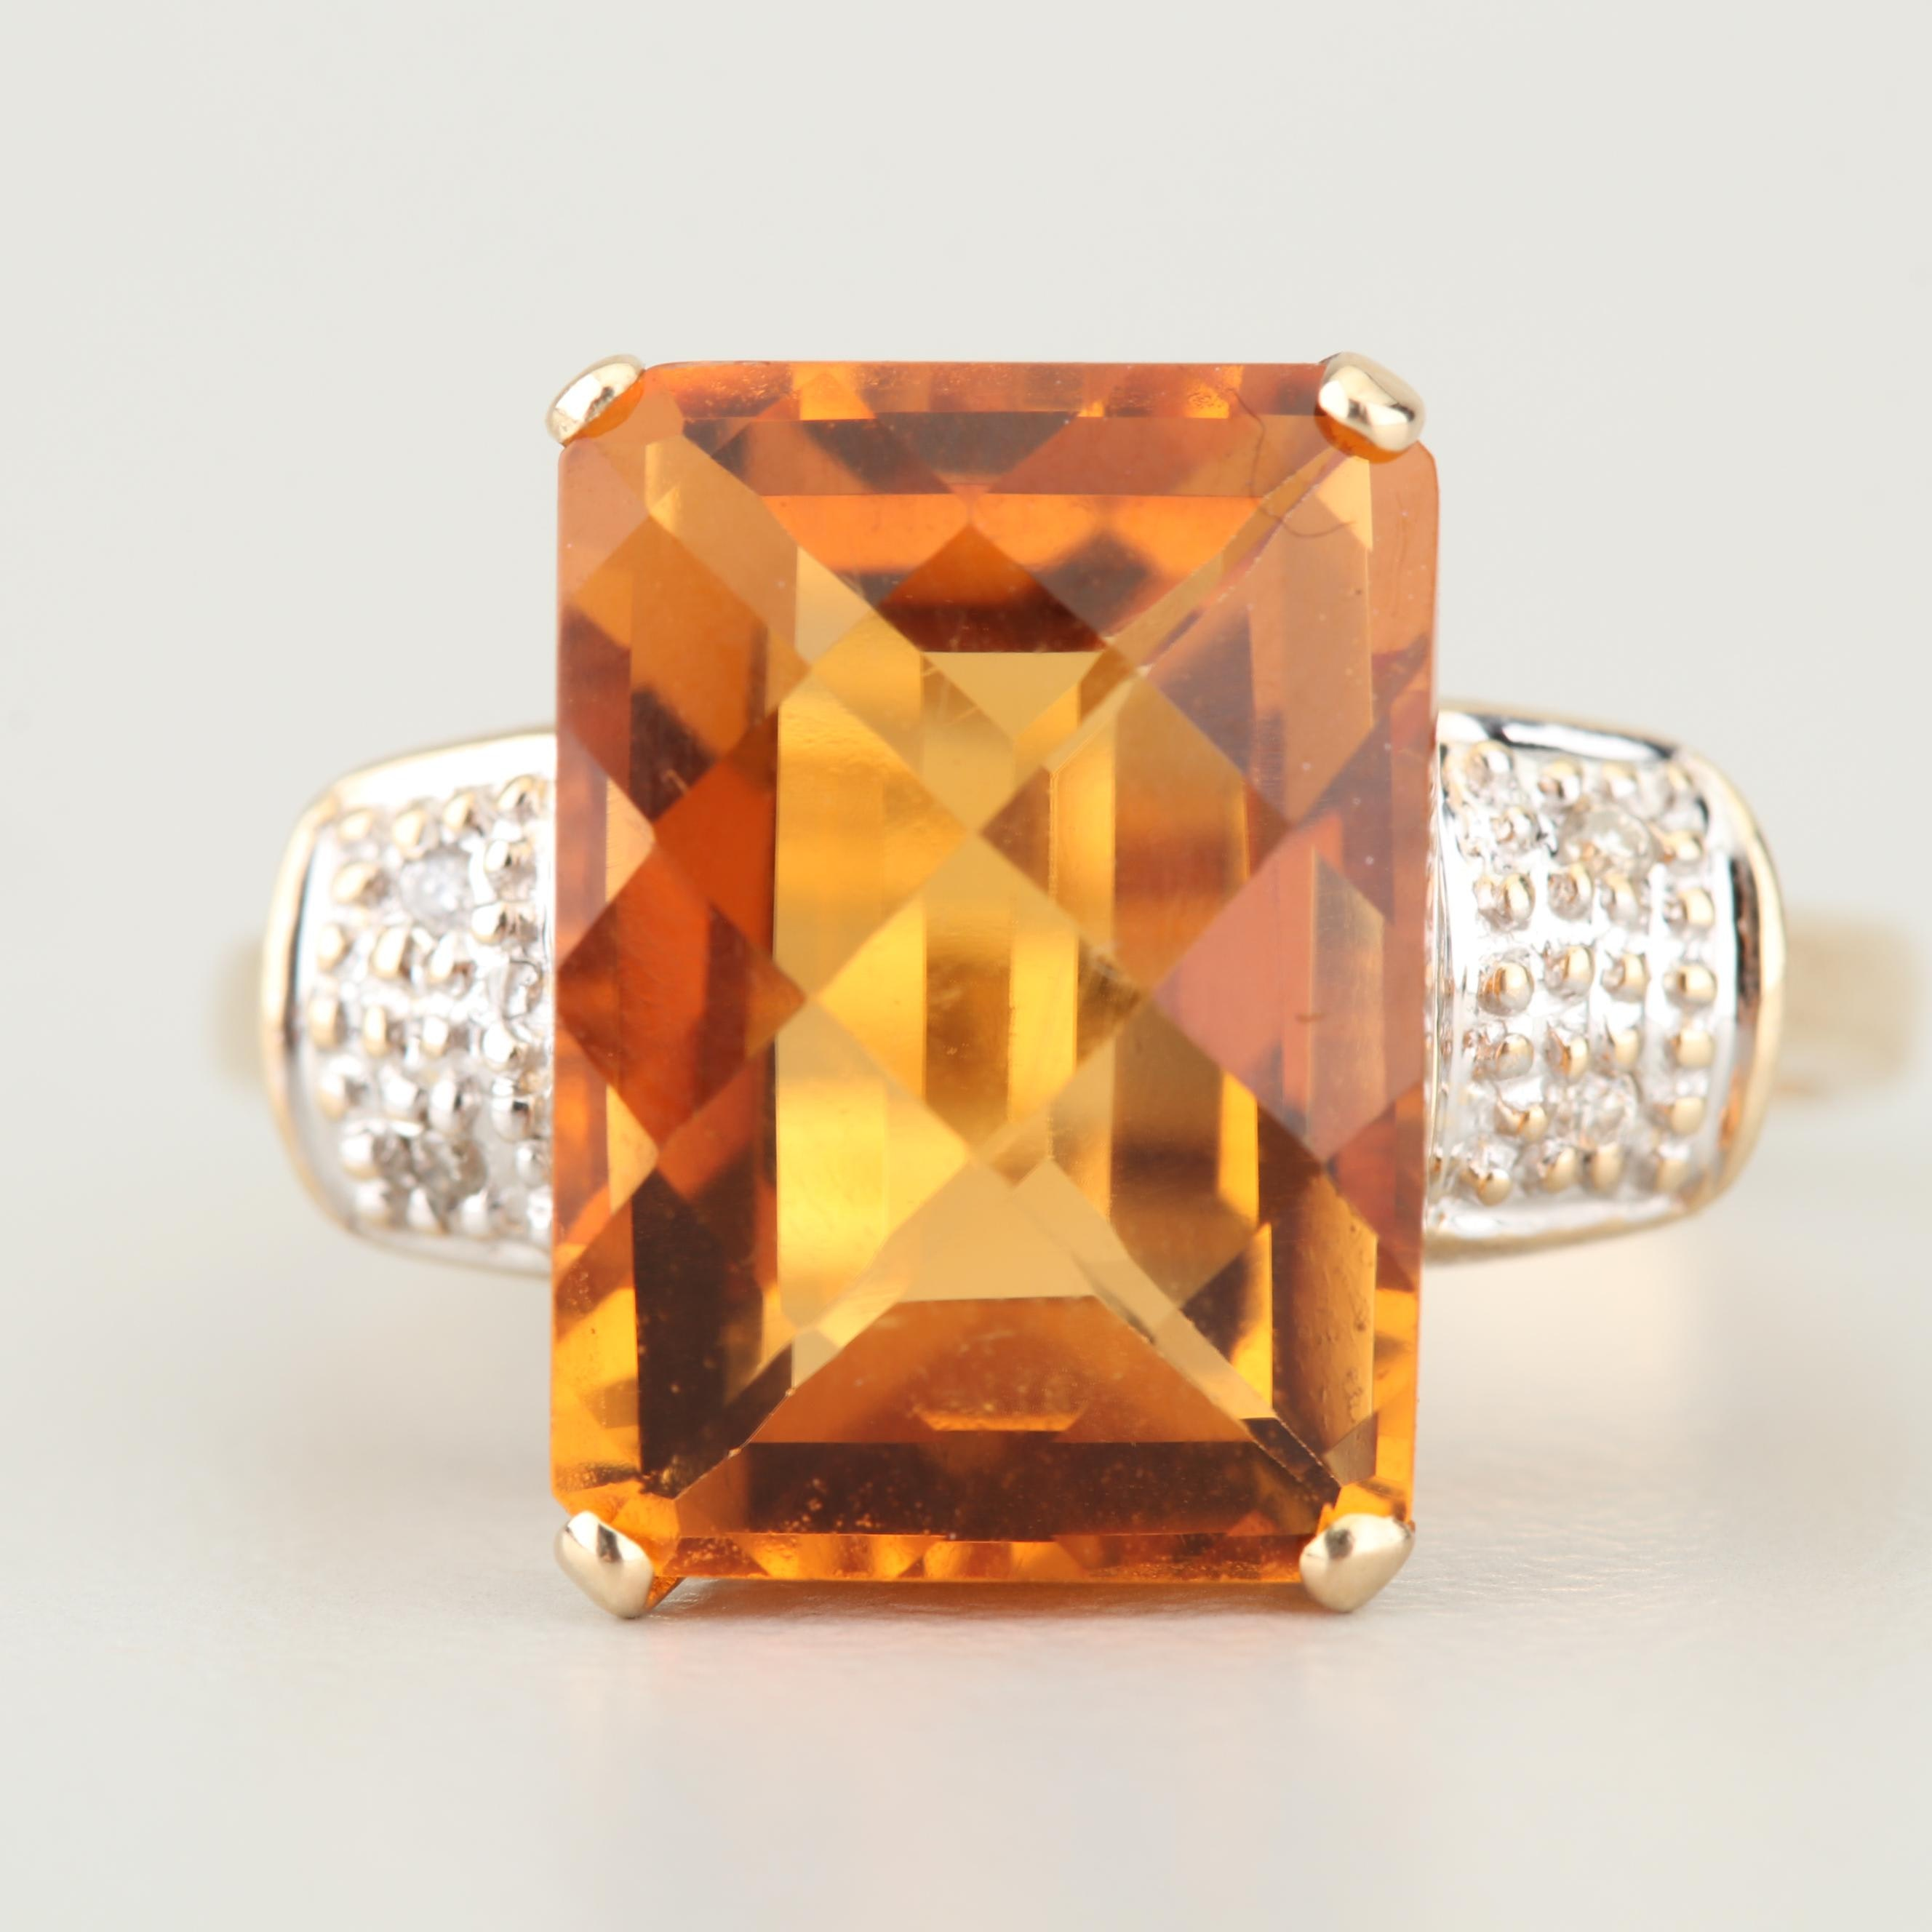 14K Yellow and White Gold 7.05 CT Citrine and Diamond Ring